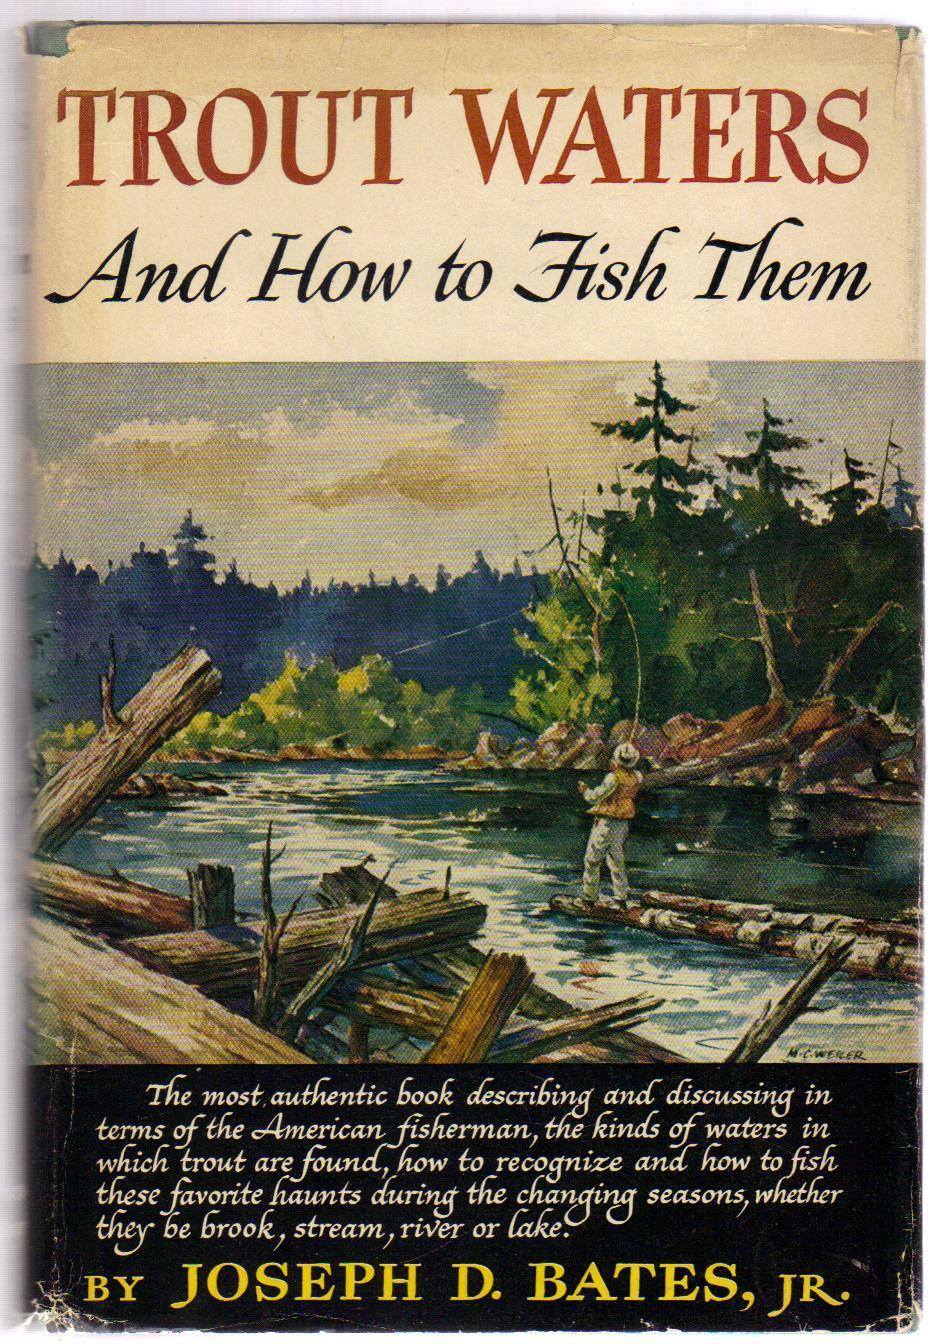 Trout Waters and How To Fish Them 1949 First Edition by J D-Bates Jr